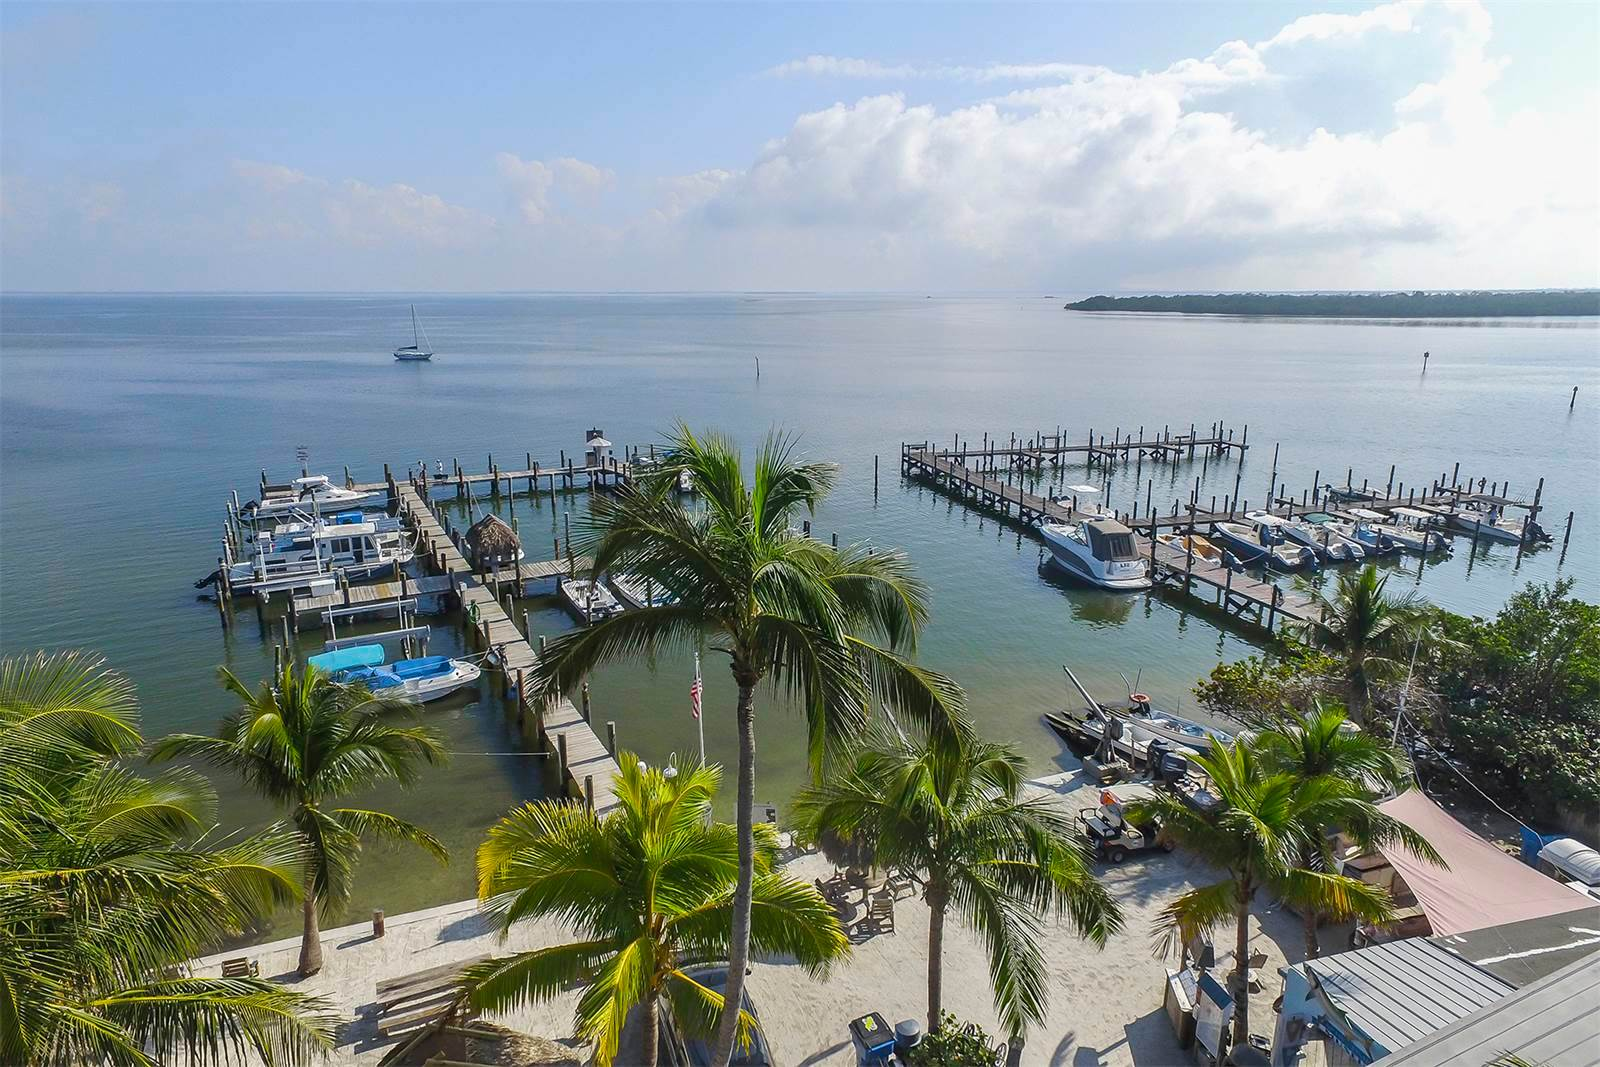 Jensen's Twin Palm Cottages and Marina For Sale, Captiva Island Real Estate Report. Arial View. Photo Courtesy Of Jeffrey Burns, Premier Sotheby's International Realty.